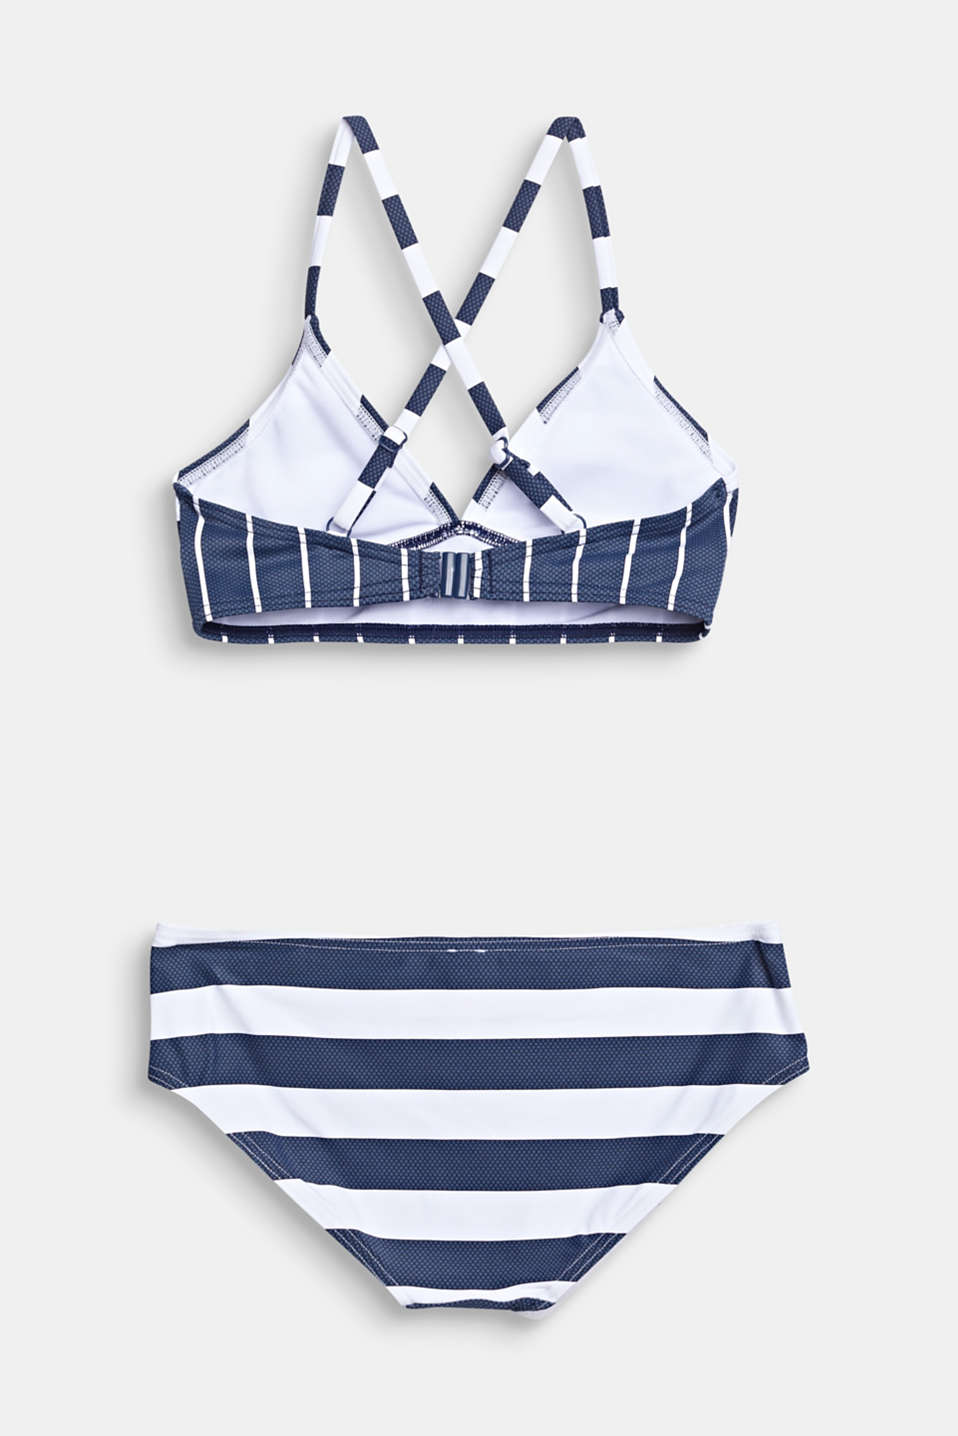 Striped crop top bikini, DARK BLUE, detail image number 1